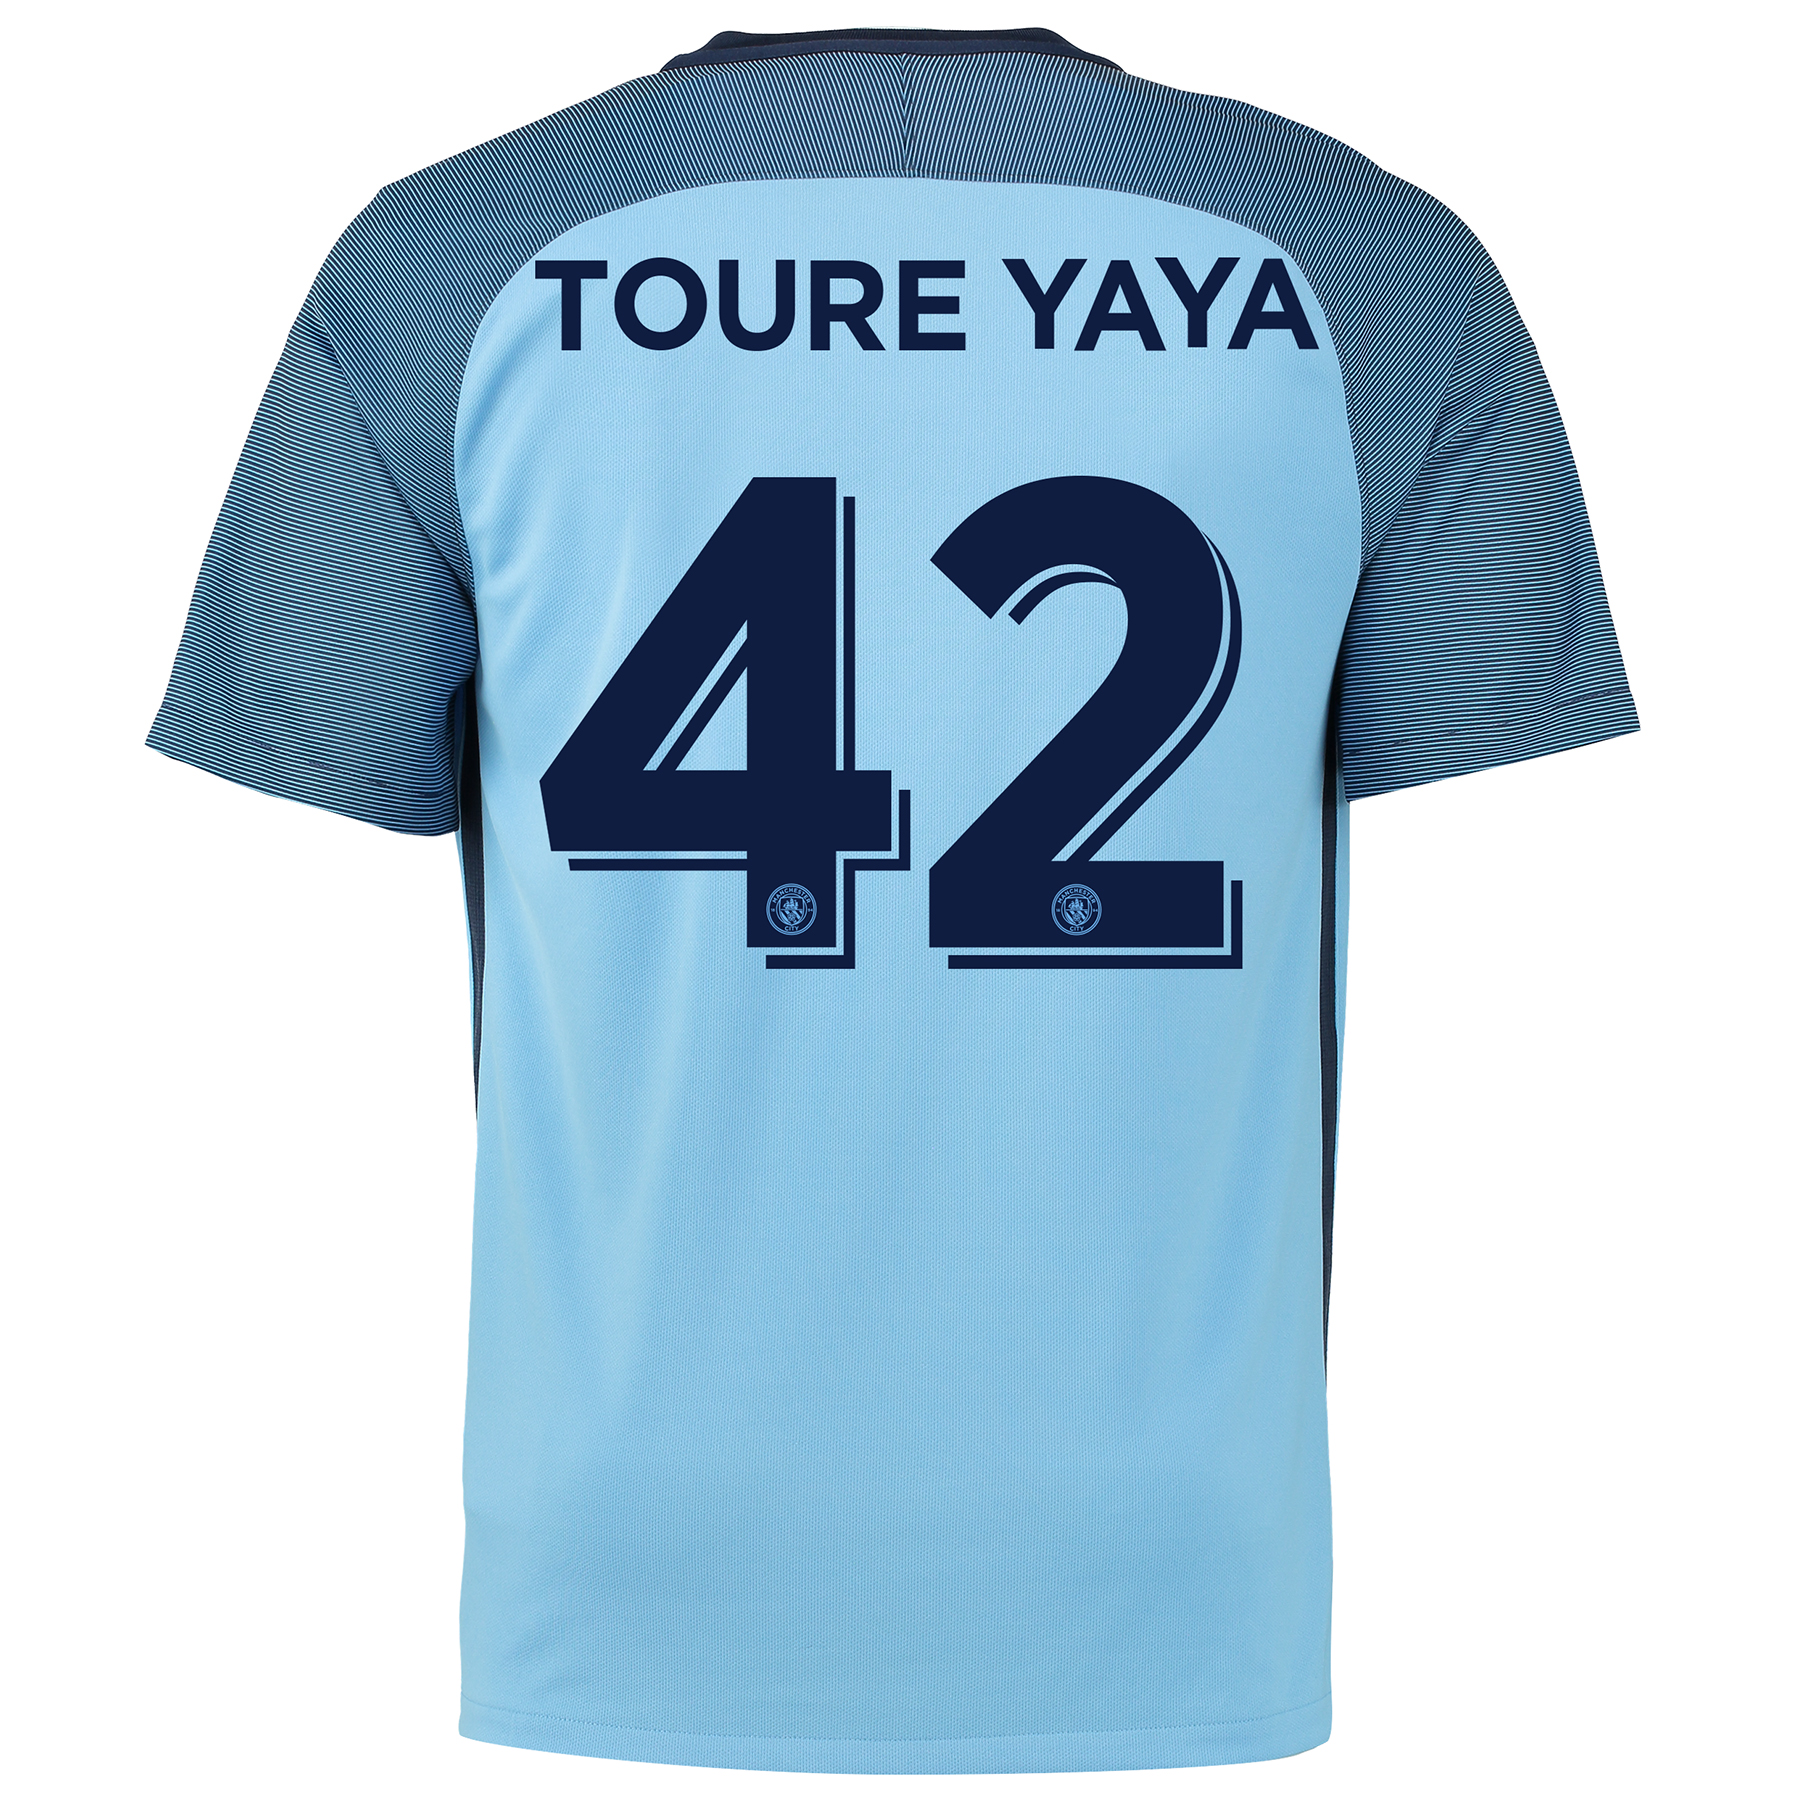 Manchester City Home Cup Shirt 2016-17 with Toure Yaya 42 printing